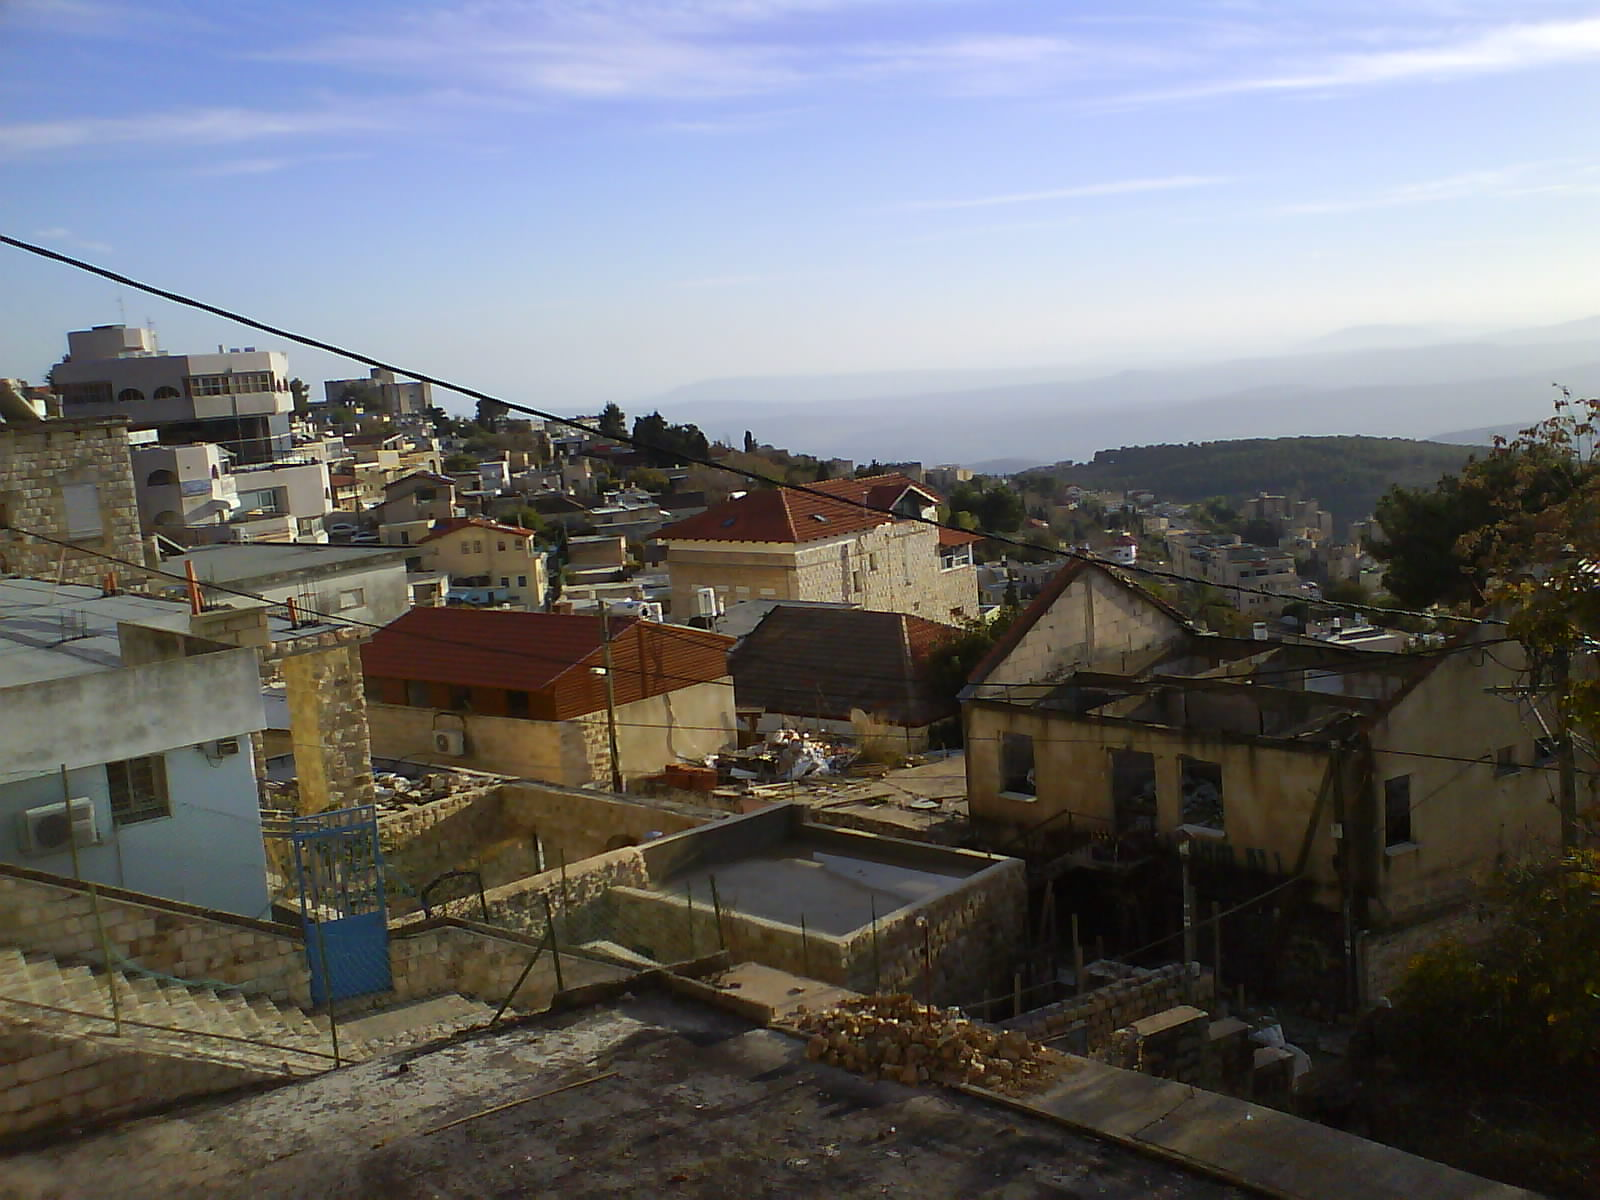 Shearim: Photos from the Old City in Zfat (Safed